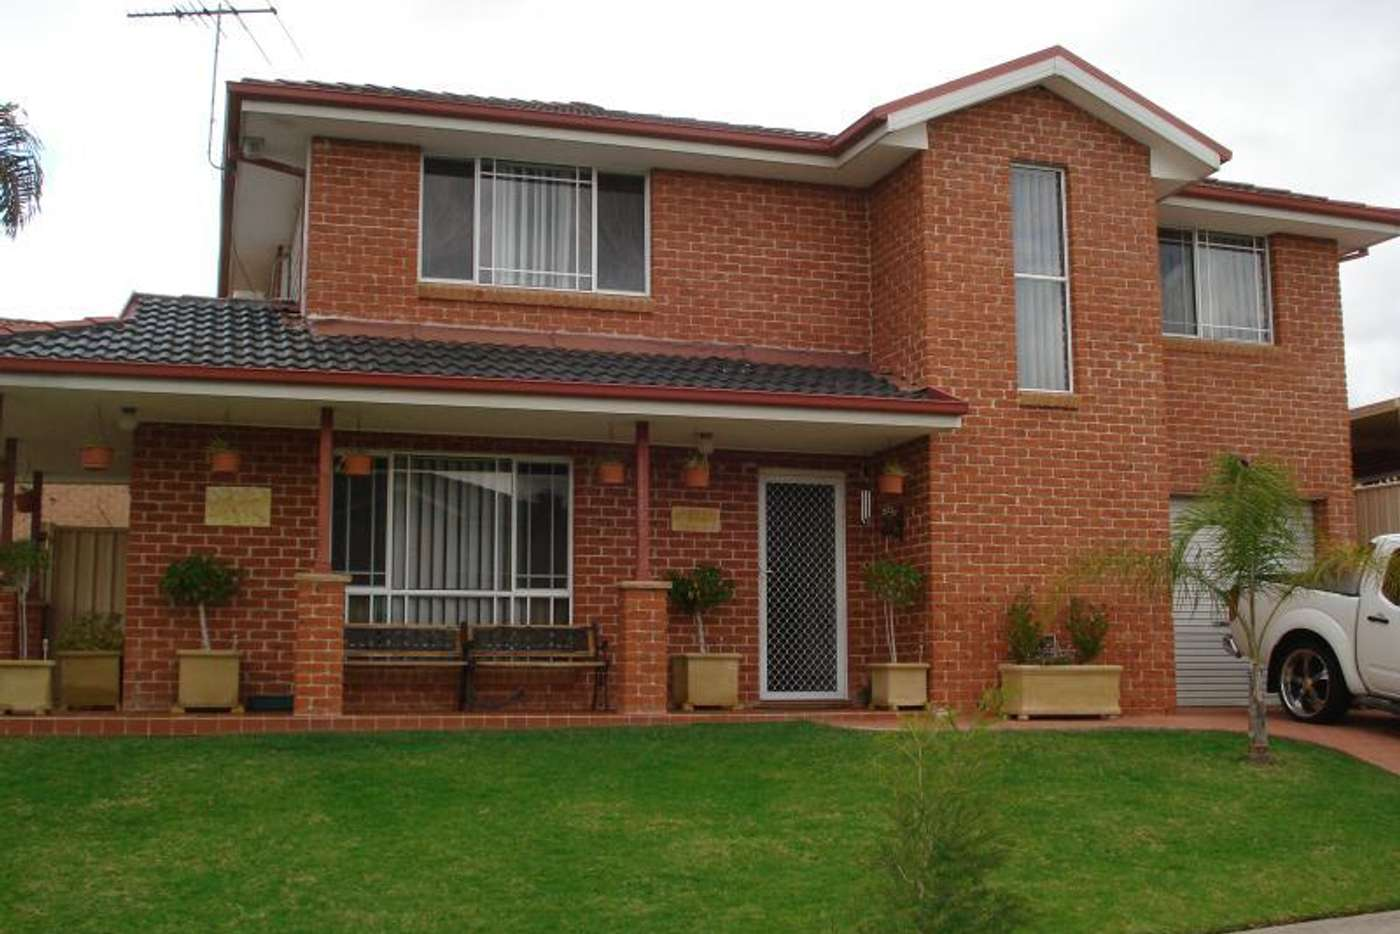 Main view of Homely house listing, 2 Wellesley Place, Green Valley NSW 2168